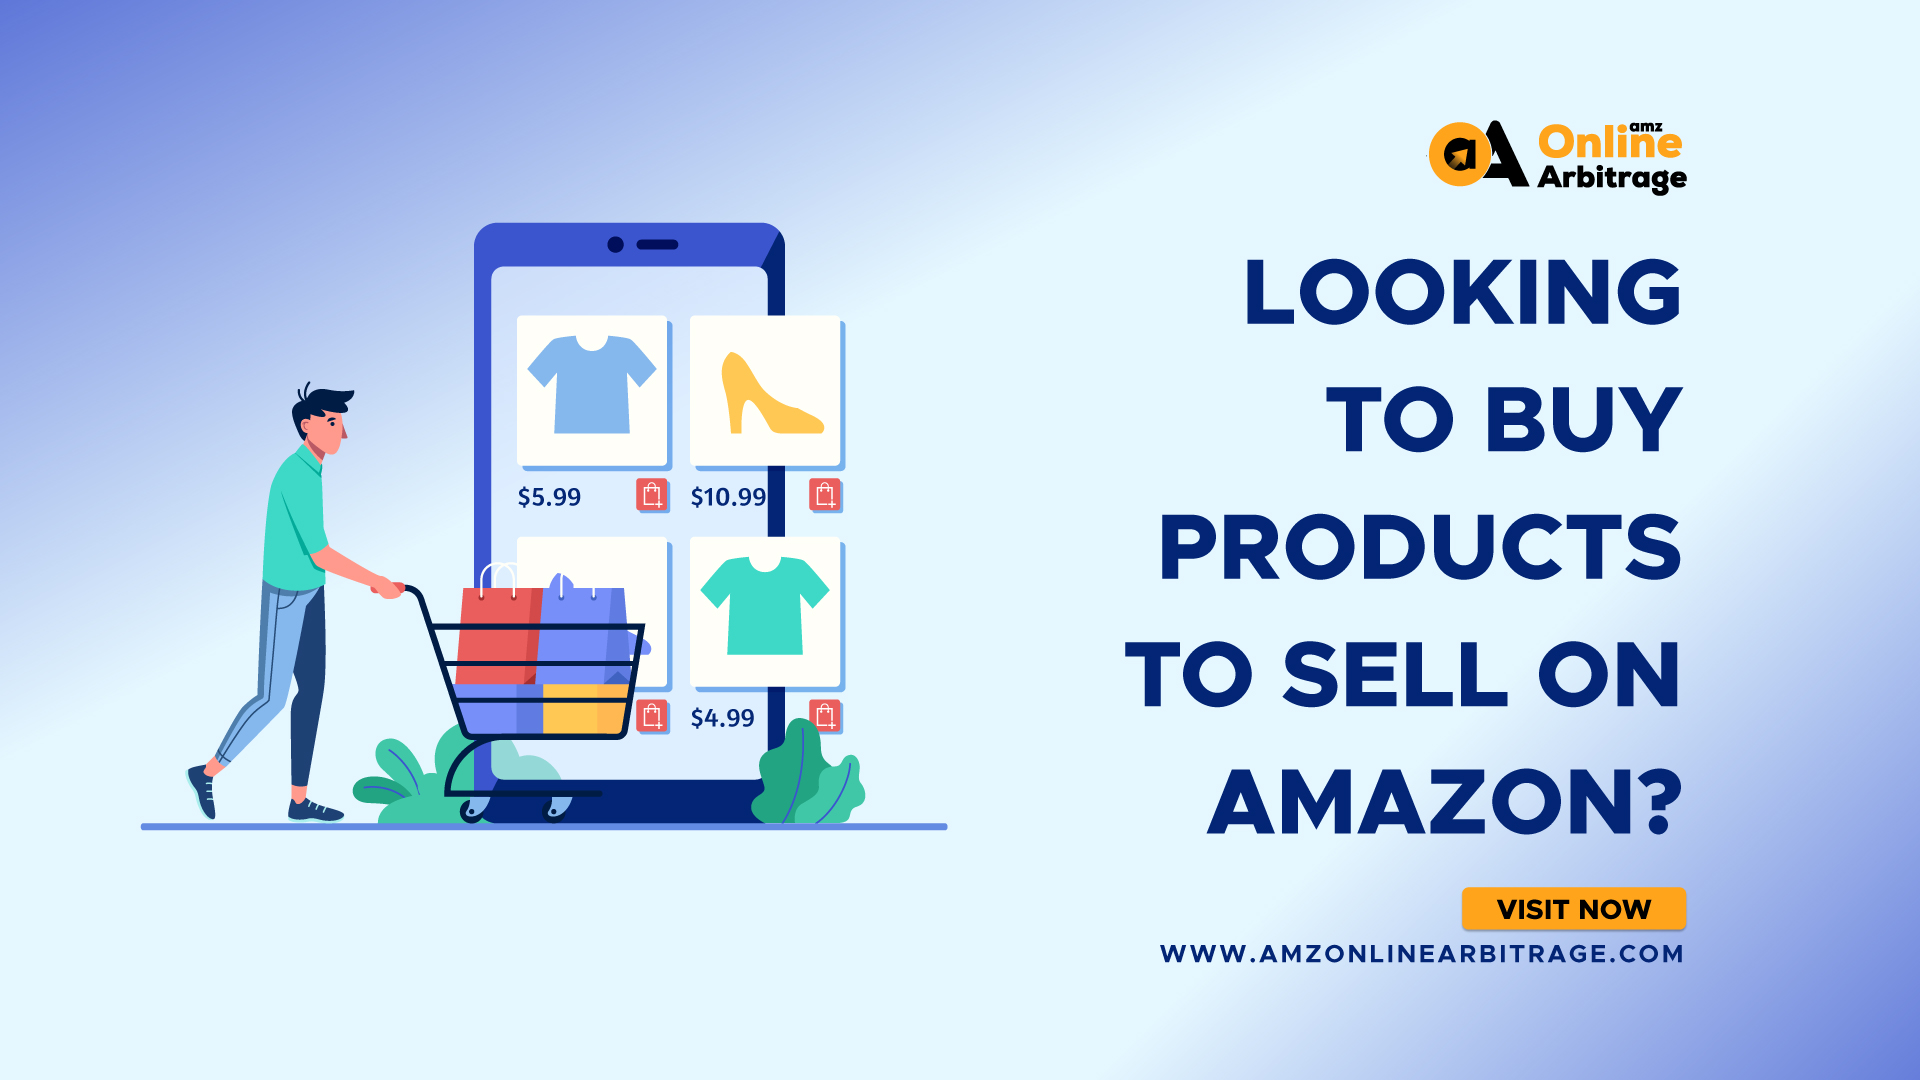 LOOKING TO BUY PRODUCTS TO SELL ON AMAZON?